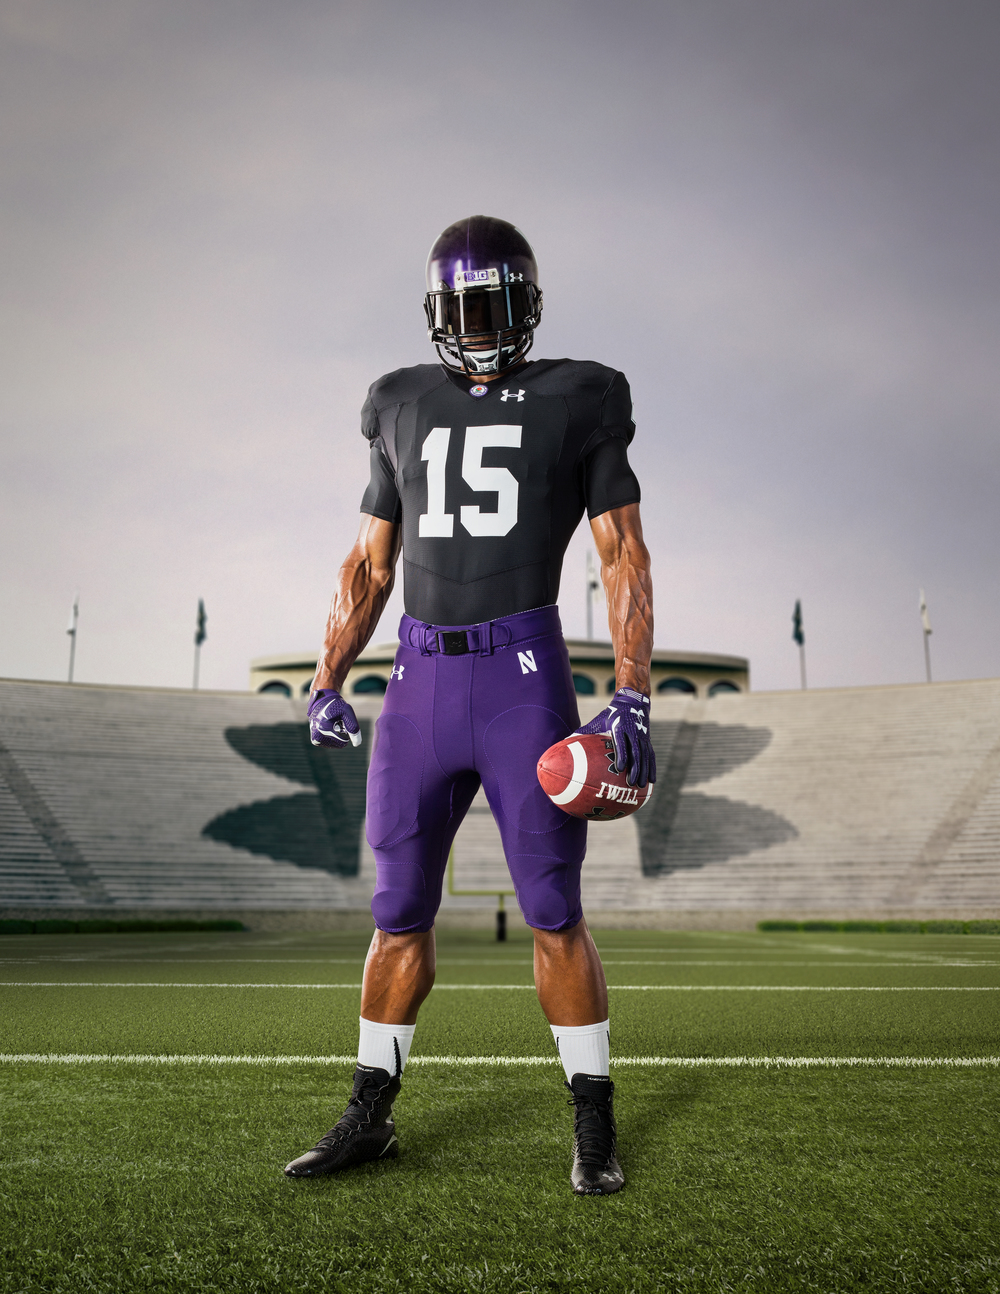 College_FBALL_FULL-NORTHWESTERN (1).jpg